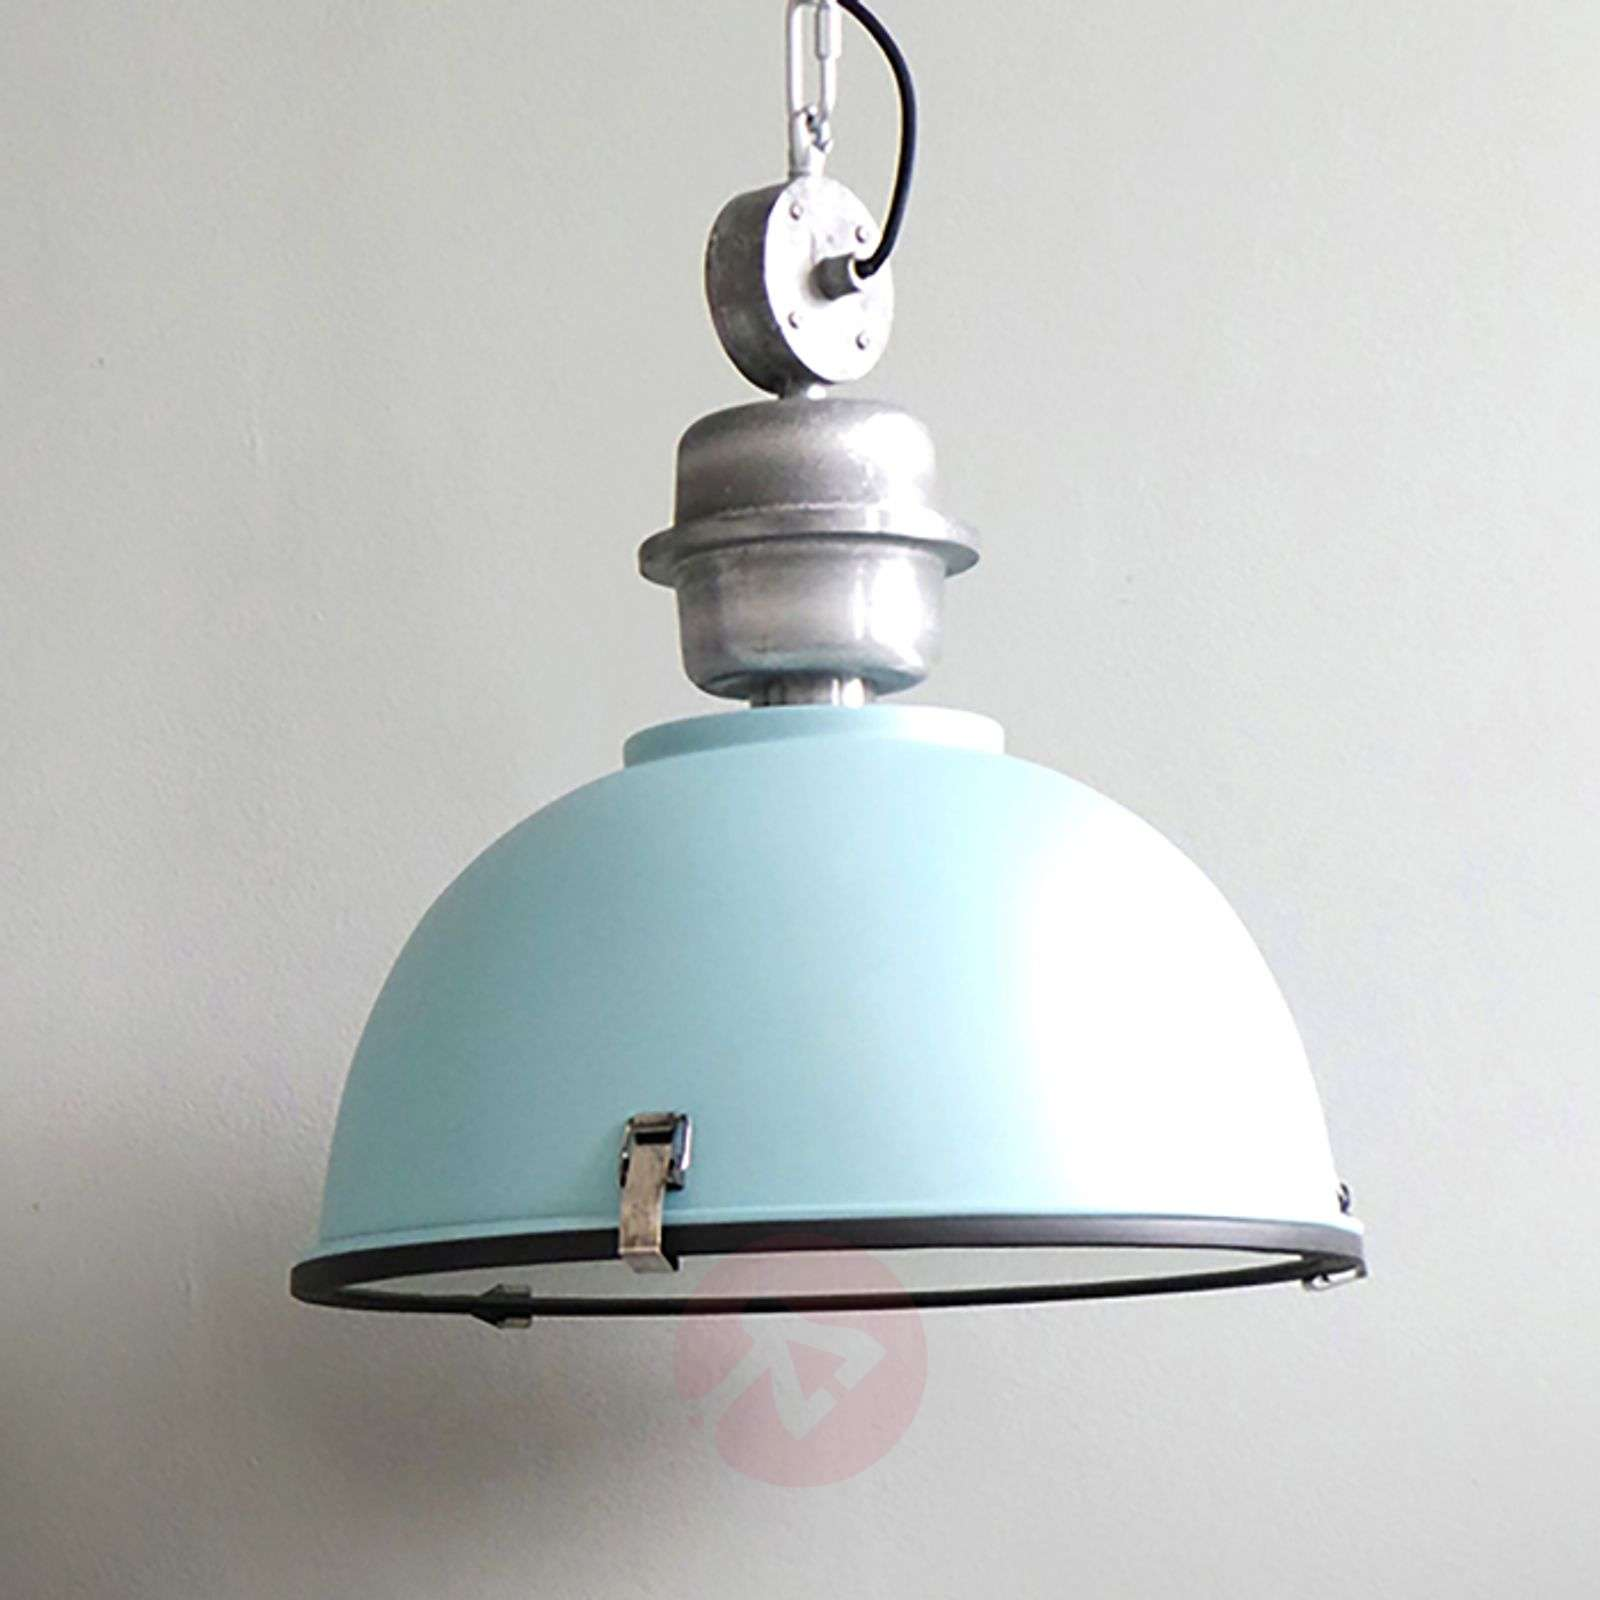 bulb most light table ceiling fixtures looking lighting lights marvelous commercial lamp industrial pendant edison genius